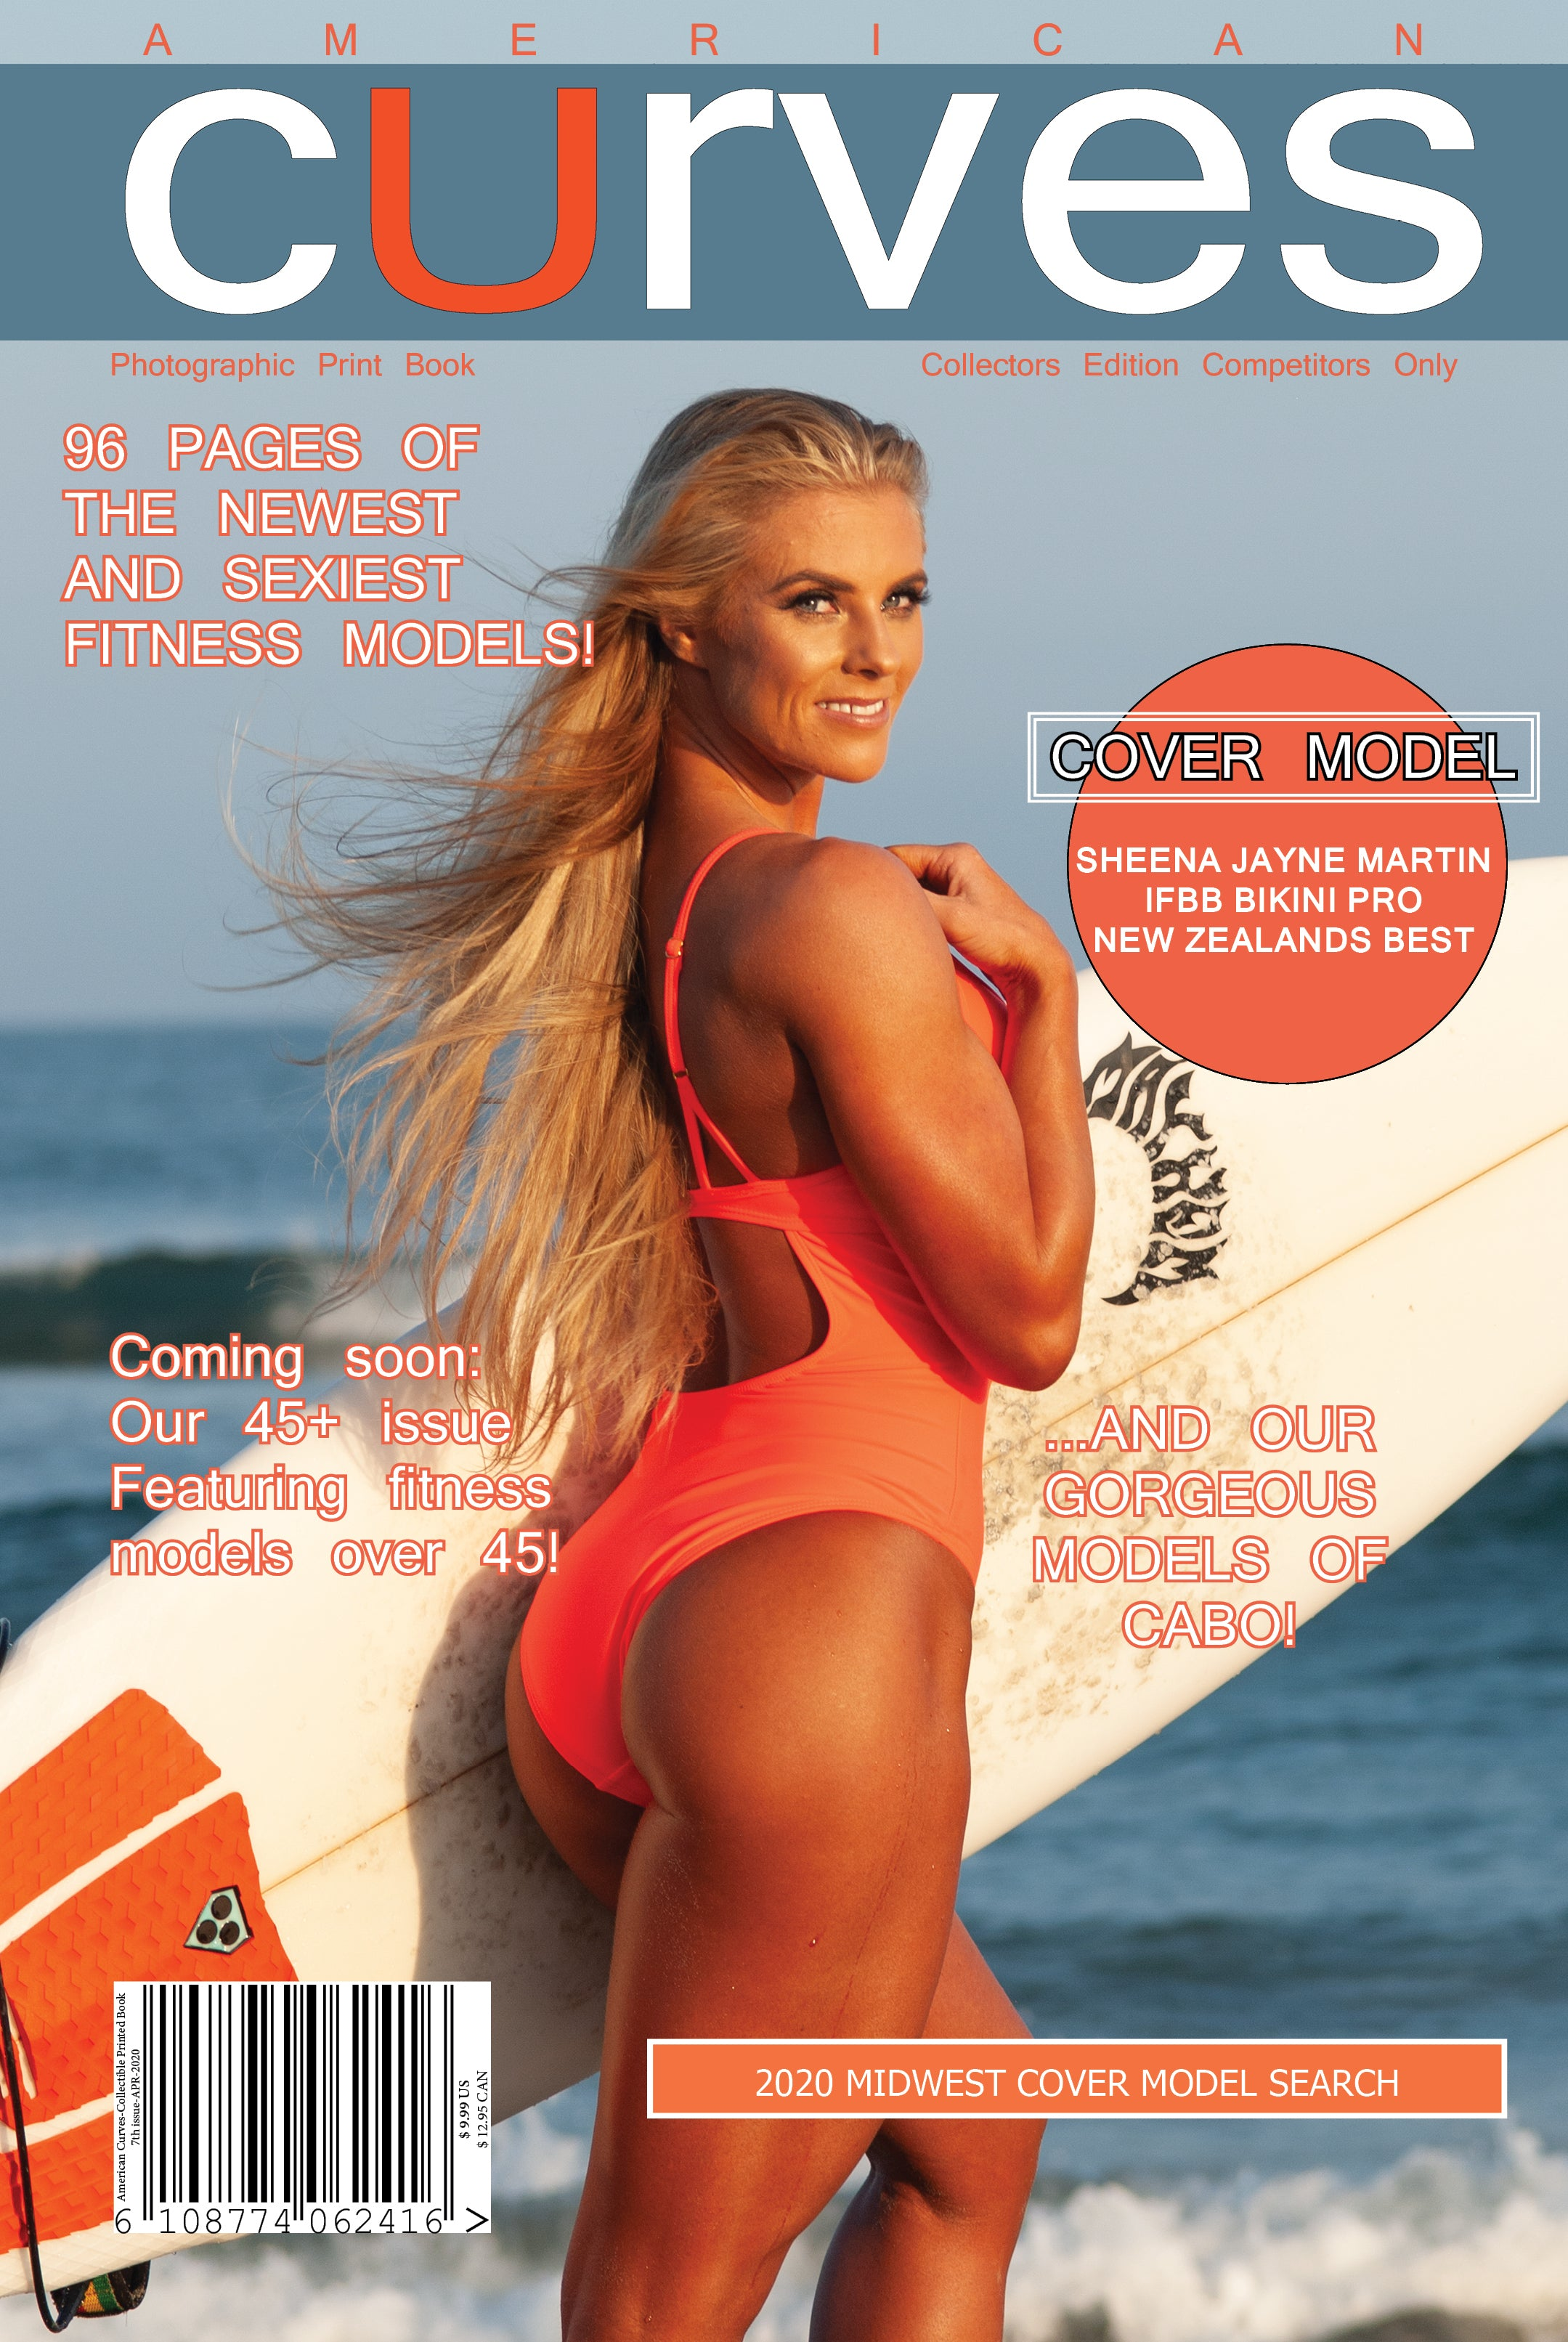 American Curves Magazine-7th Issue 2020-Collectors edition [Paper-back]